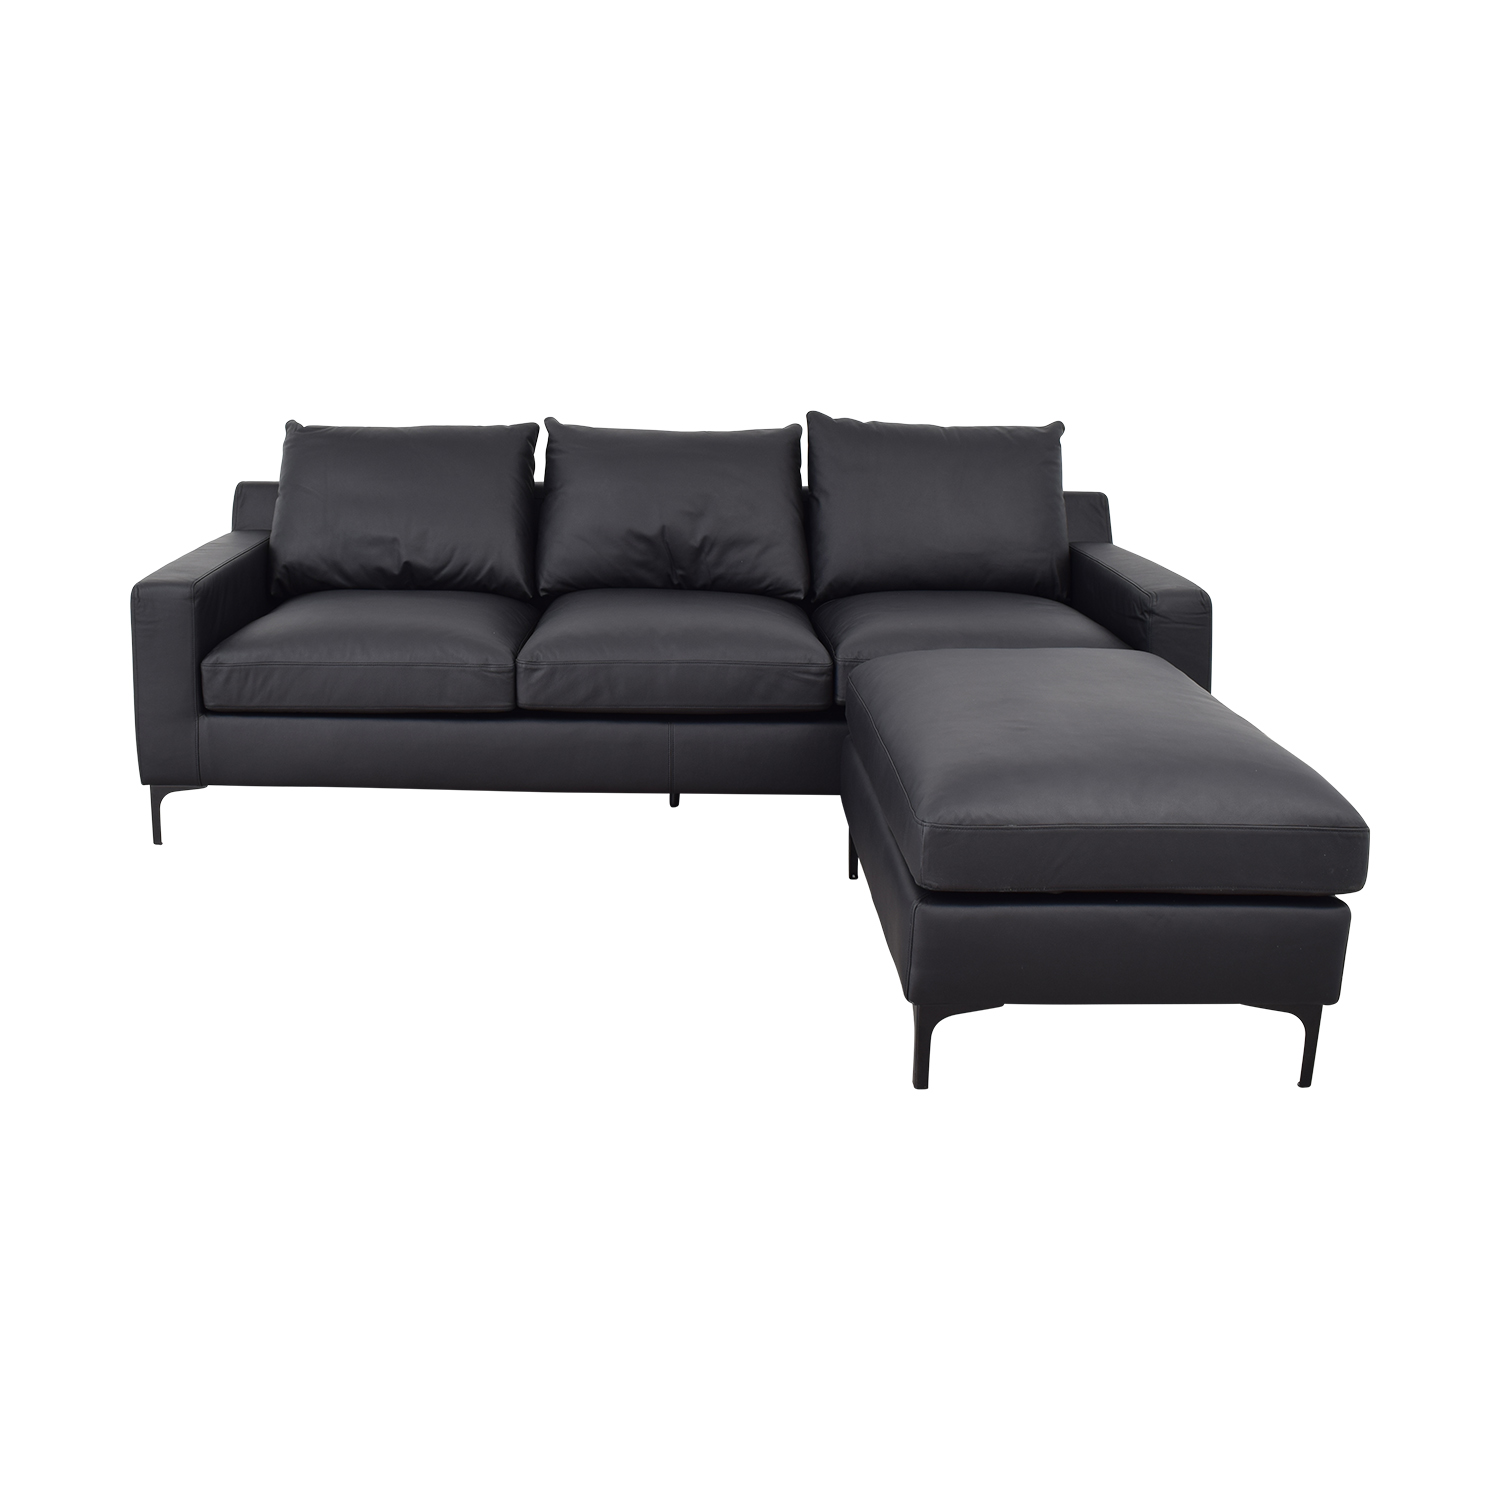 Sloan Dark Gray Leather Three-Cushion Sofa with Ottoman / Sofas